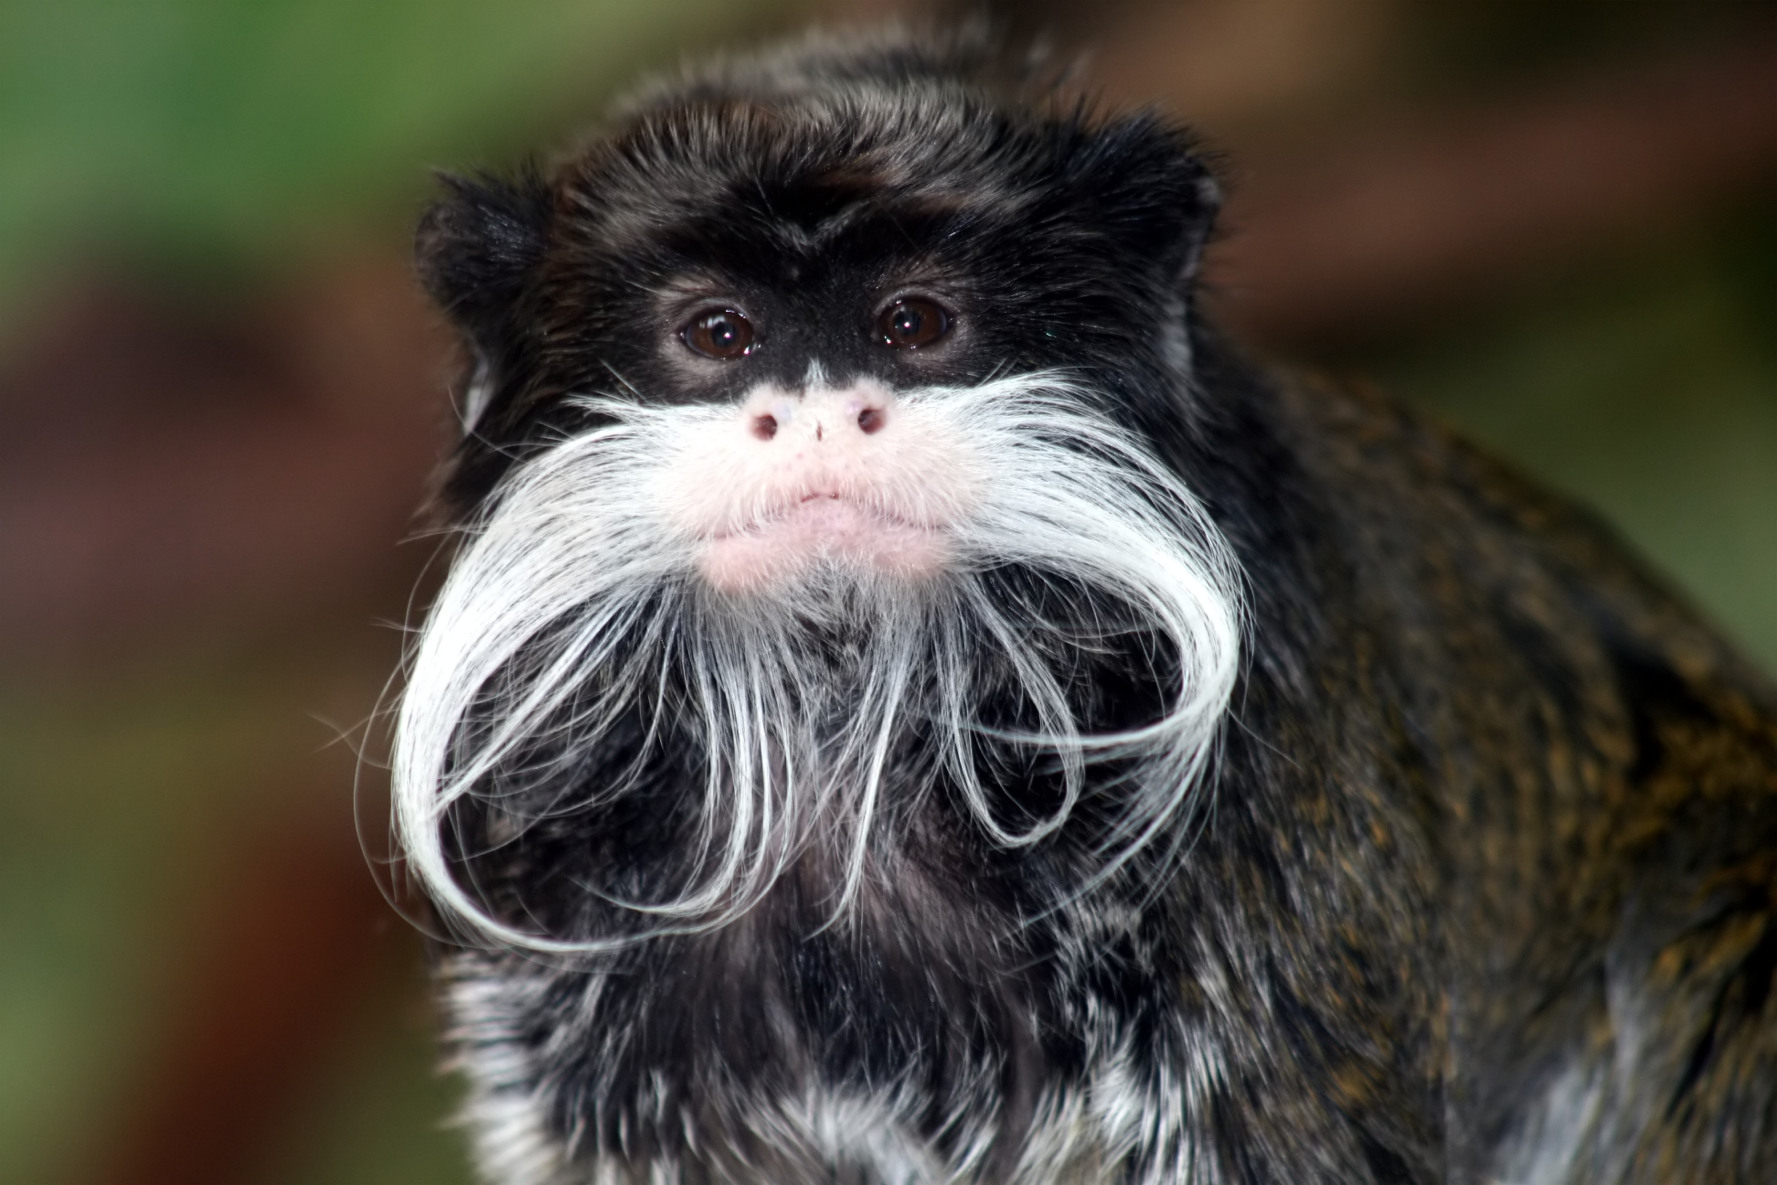 Emperor Tamarin-a new world monkey. name allegedly derived from its resemblance to the German Emperor Wilhelm II. (10DO)